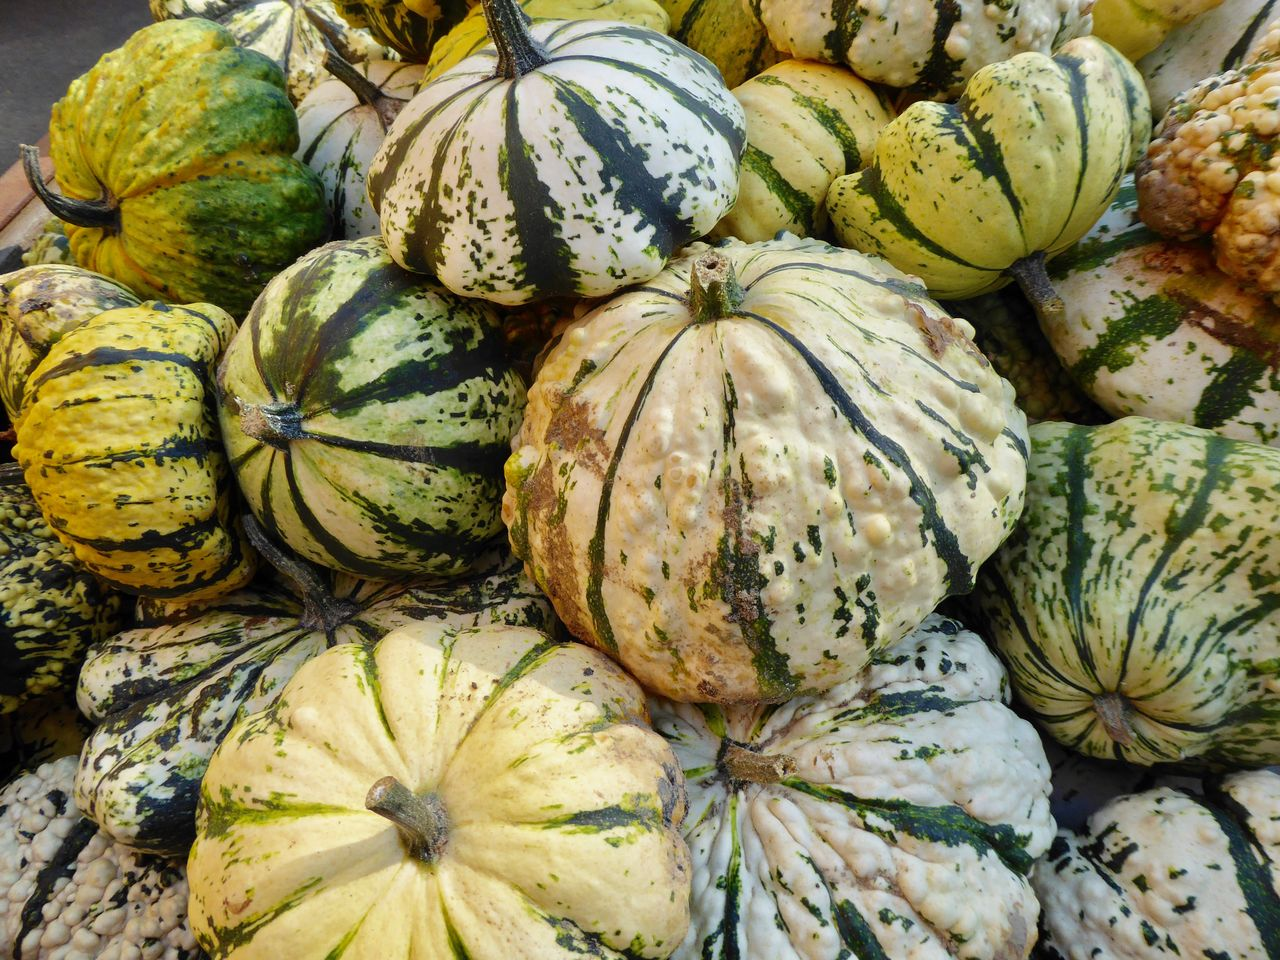 food and drink, food, freshness, healthy eating, wellbeing, vegetable, market, pumpkin, close-up, fruit, no people, full frame, large group of objects, squash - vegetable, backgrounds, retail, market stall, raw food, for sale, variation, farmer's market, ripe